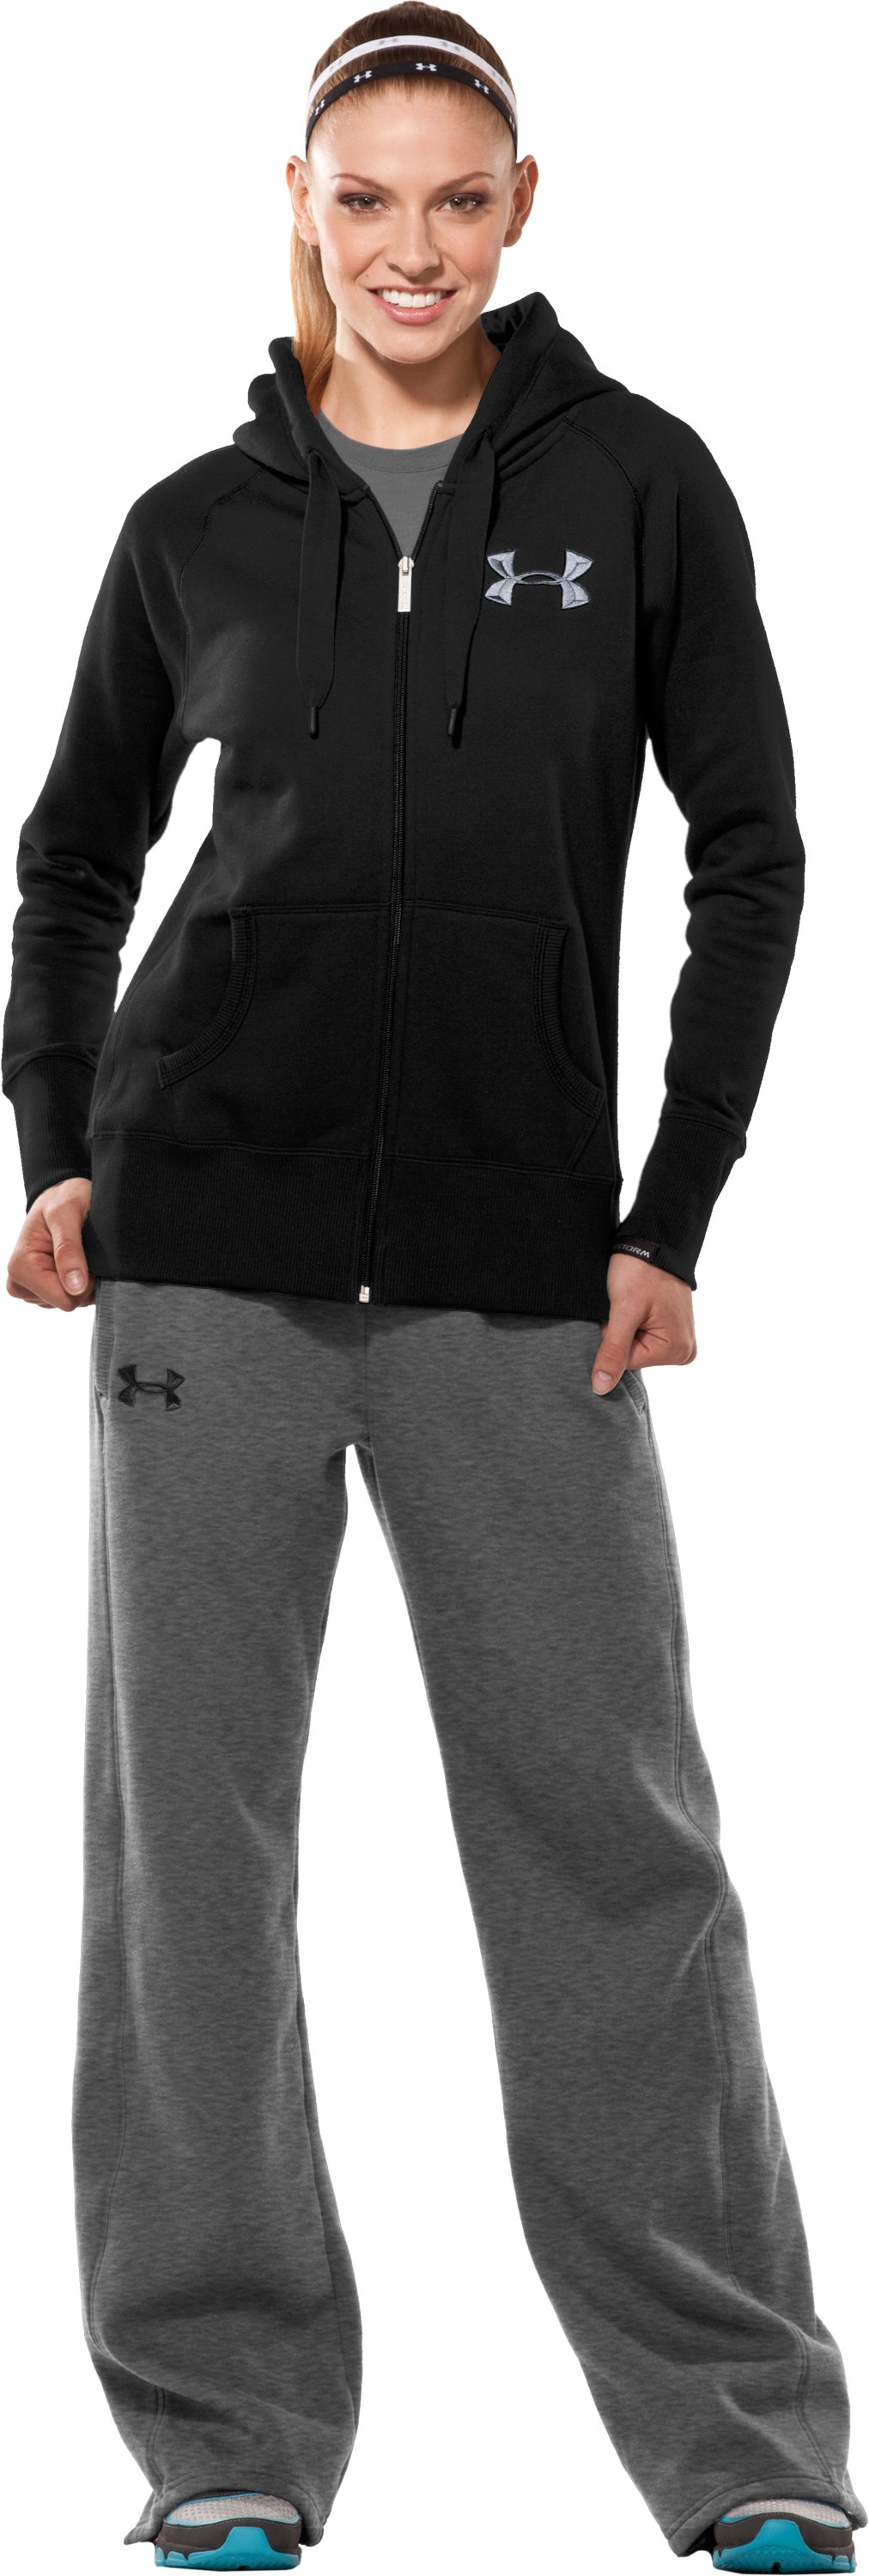 Women's UA Charged Cotton® Storm Fleece Full Zip Hoodie, Black